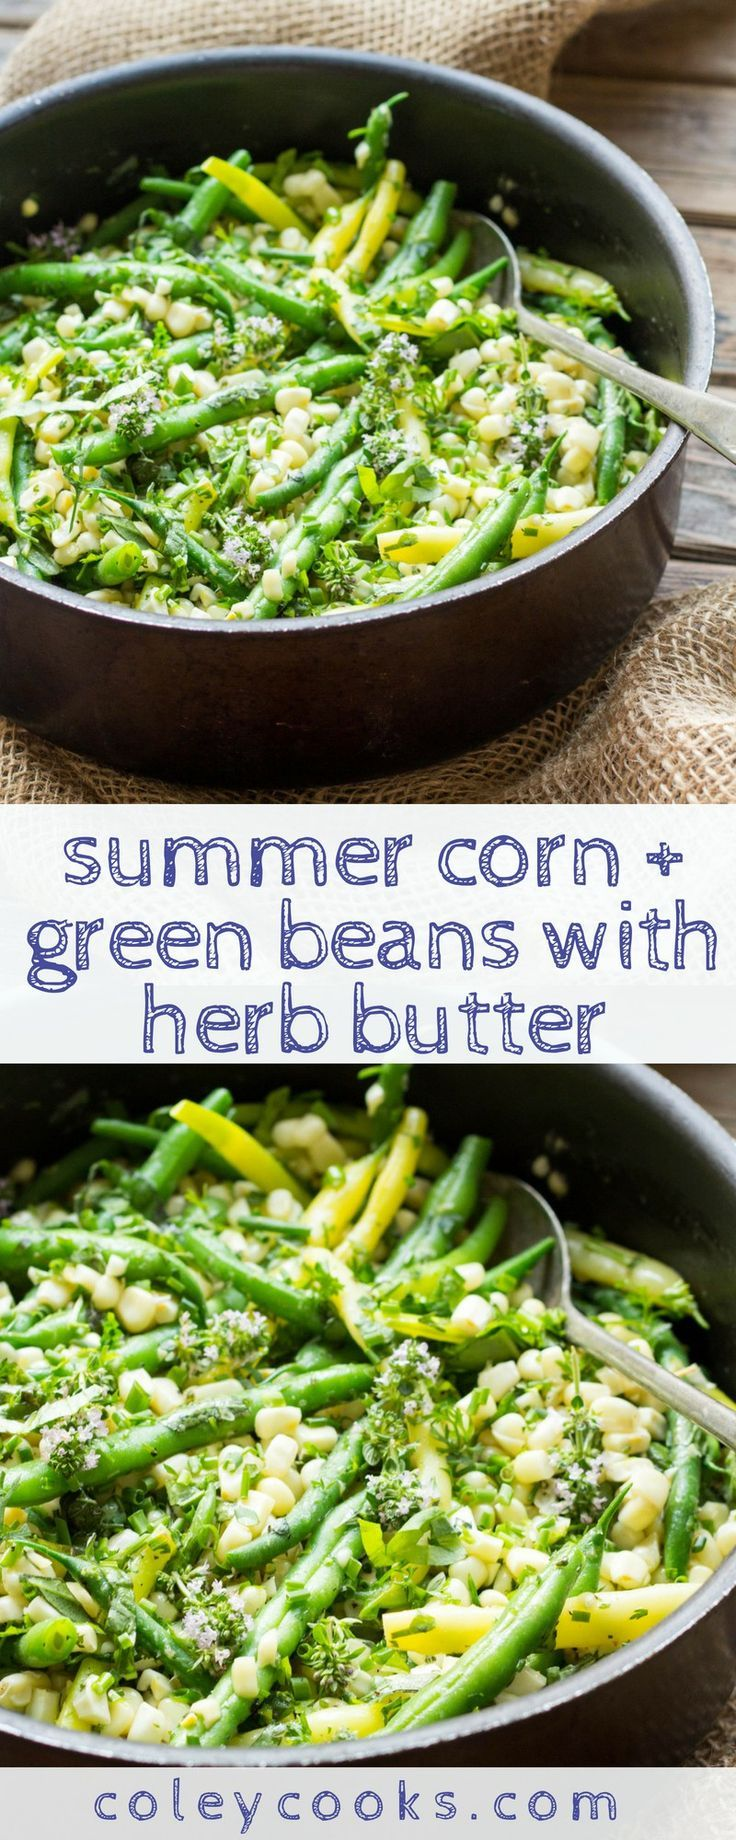 SUMMER CORN + GREEN BEANS with HERB BUTTER | Easy summer side dish recipe great with grilled summer dinners. Great use of seasonal vegetables! ColeyCooks.com #summerdinnerseasy